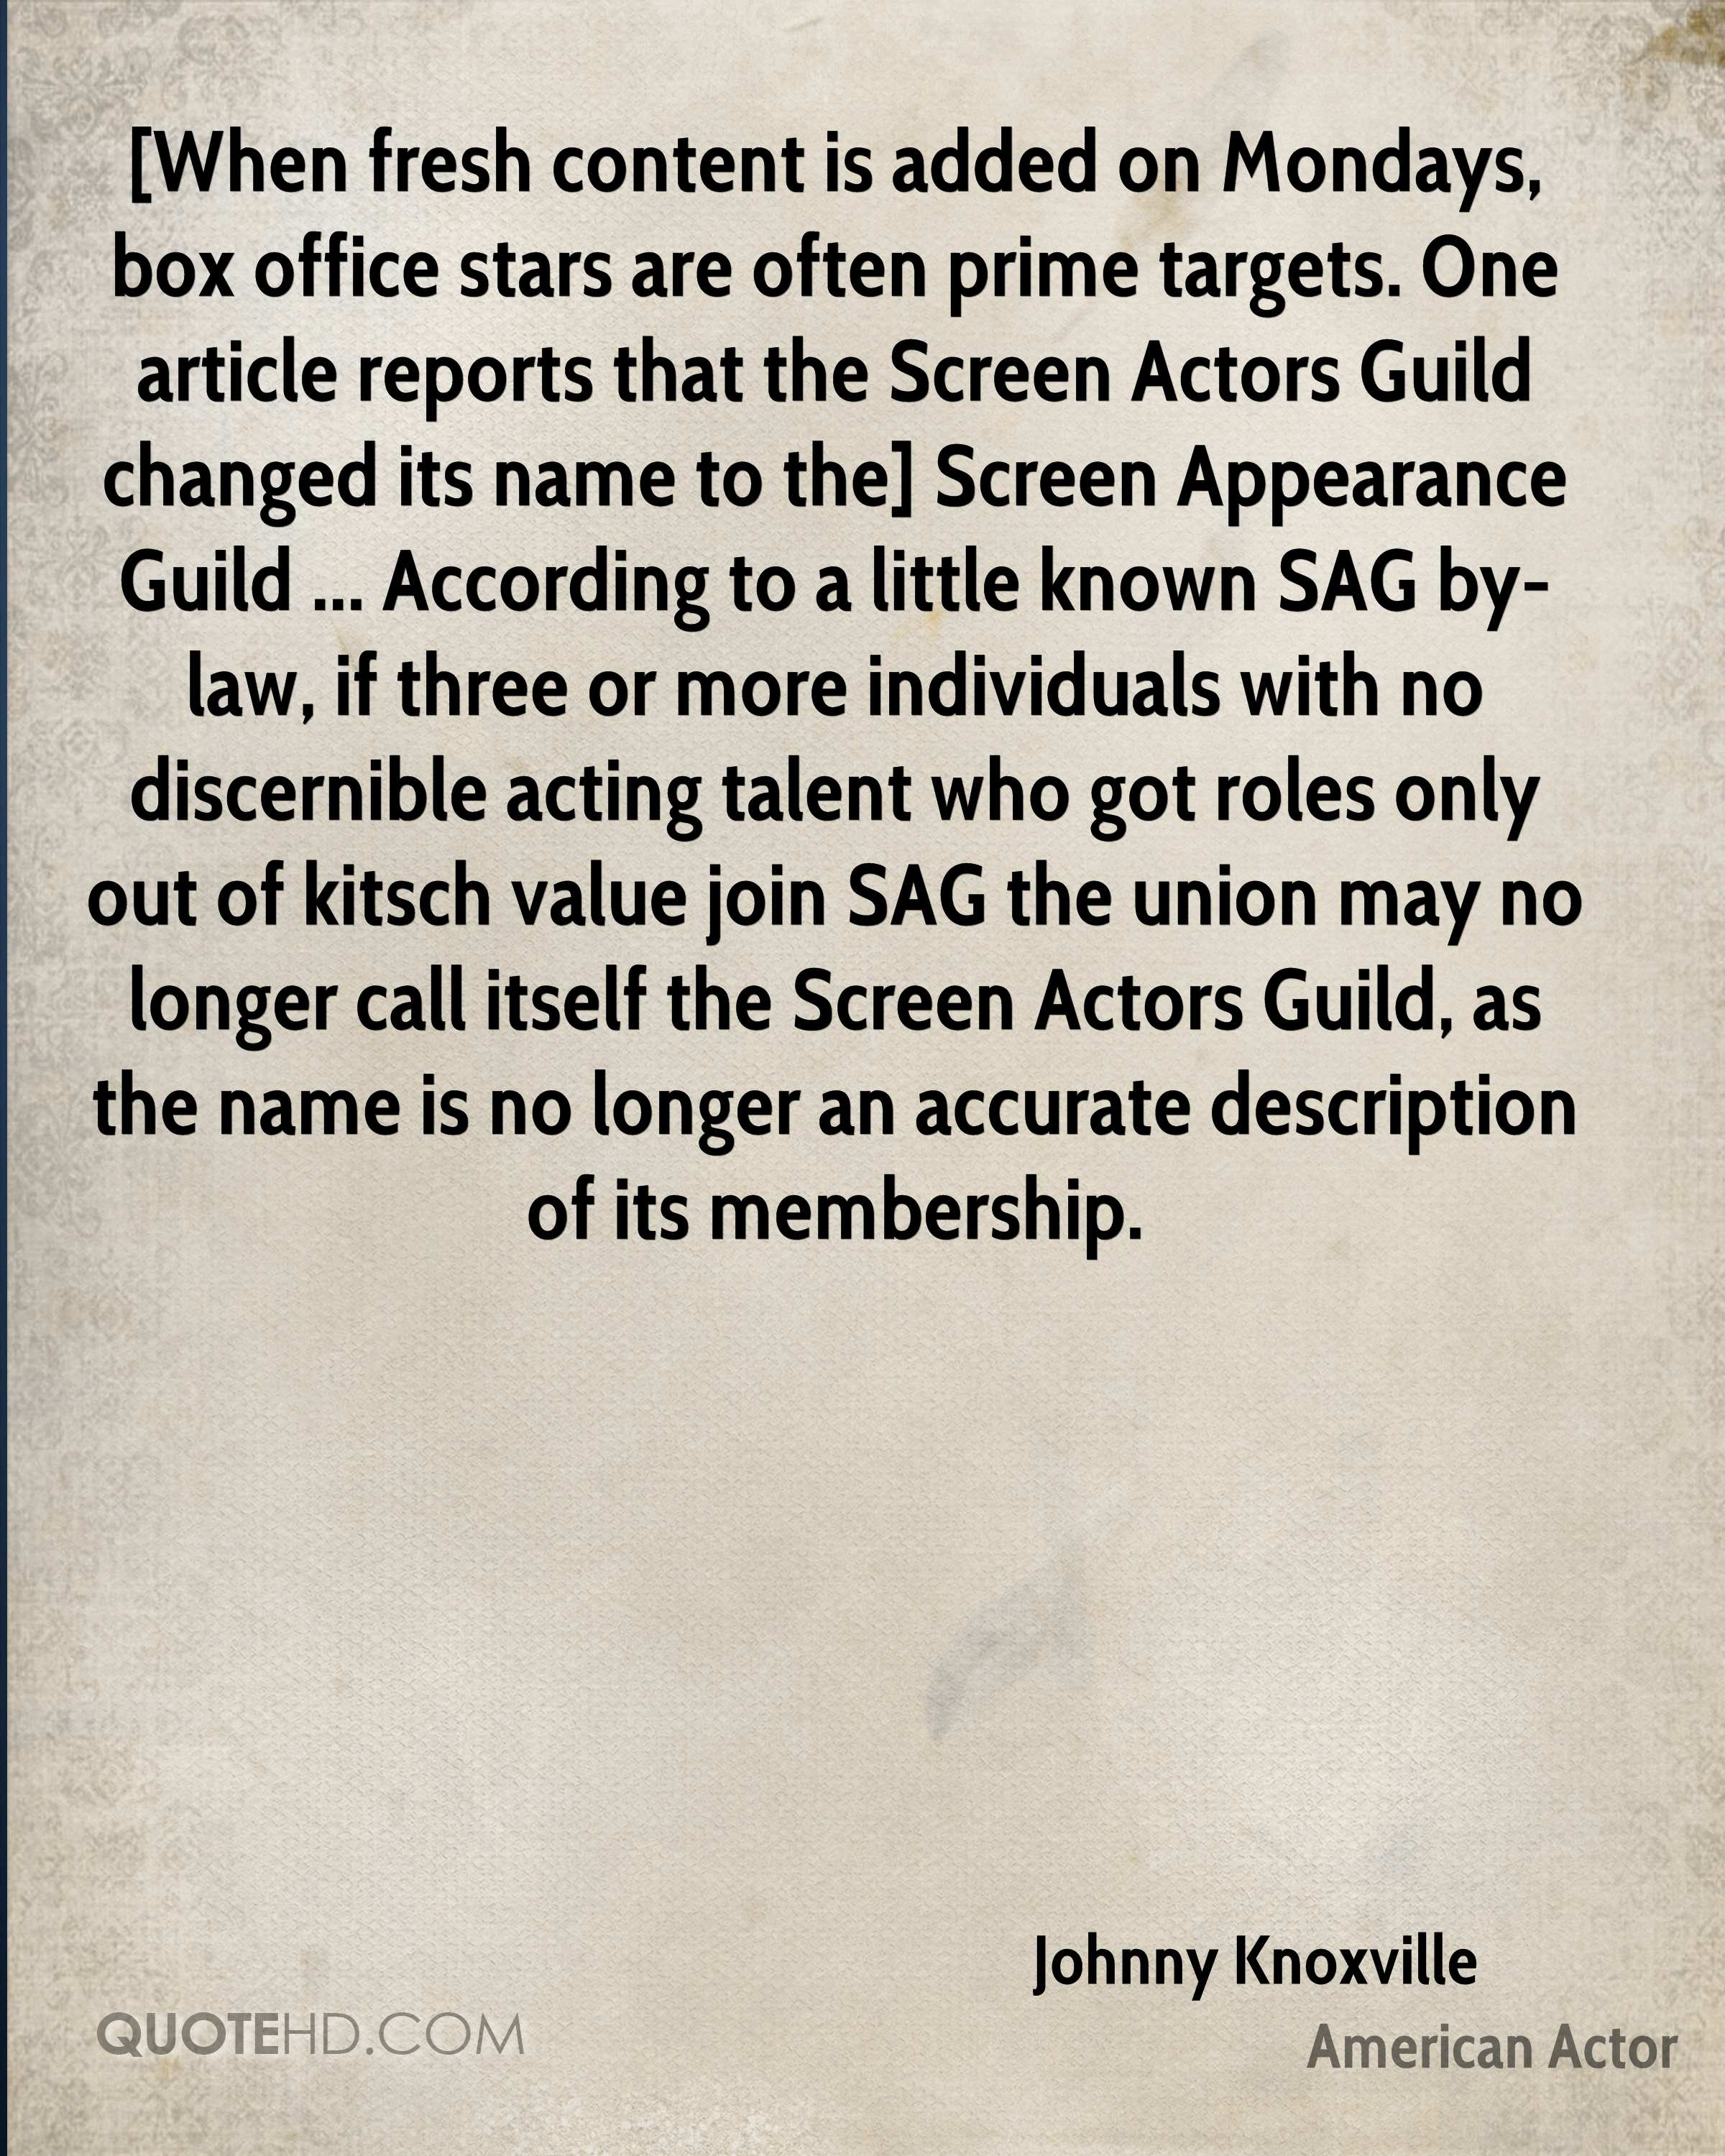 [When fresh content is added on Mondays, box office stars are often prime targets. One article reports that the Screen Actors Guild changed its name to the] Screen Appearance Guild ... According to a little known SAG by-law, if three or more individuals with no discernible acting talent who got roles only out of kitsch value join SAG the union may no longer call itself the Screen Actors Guild, as the name is no longer an accurate description of its membership.